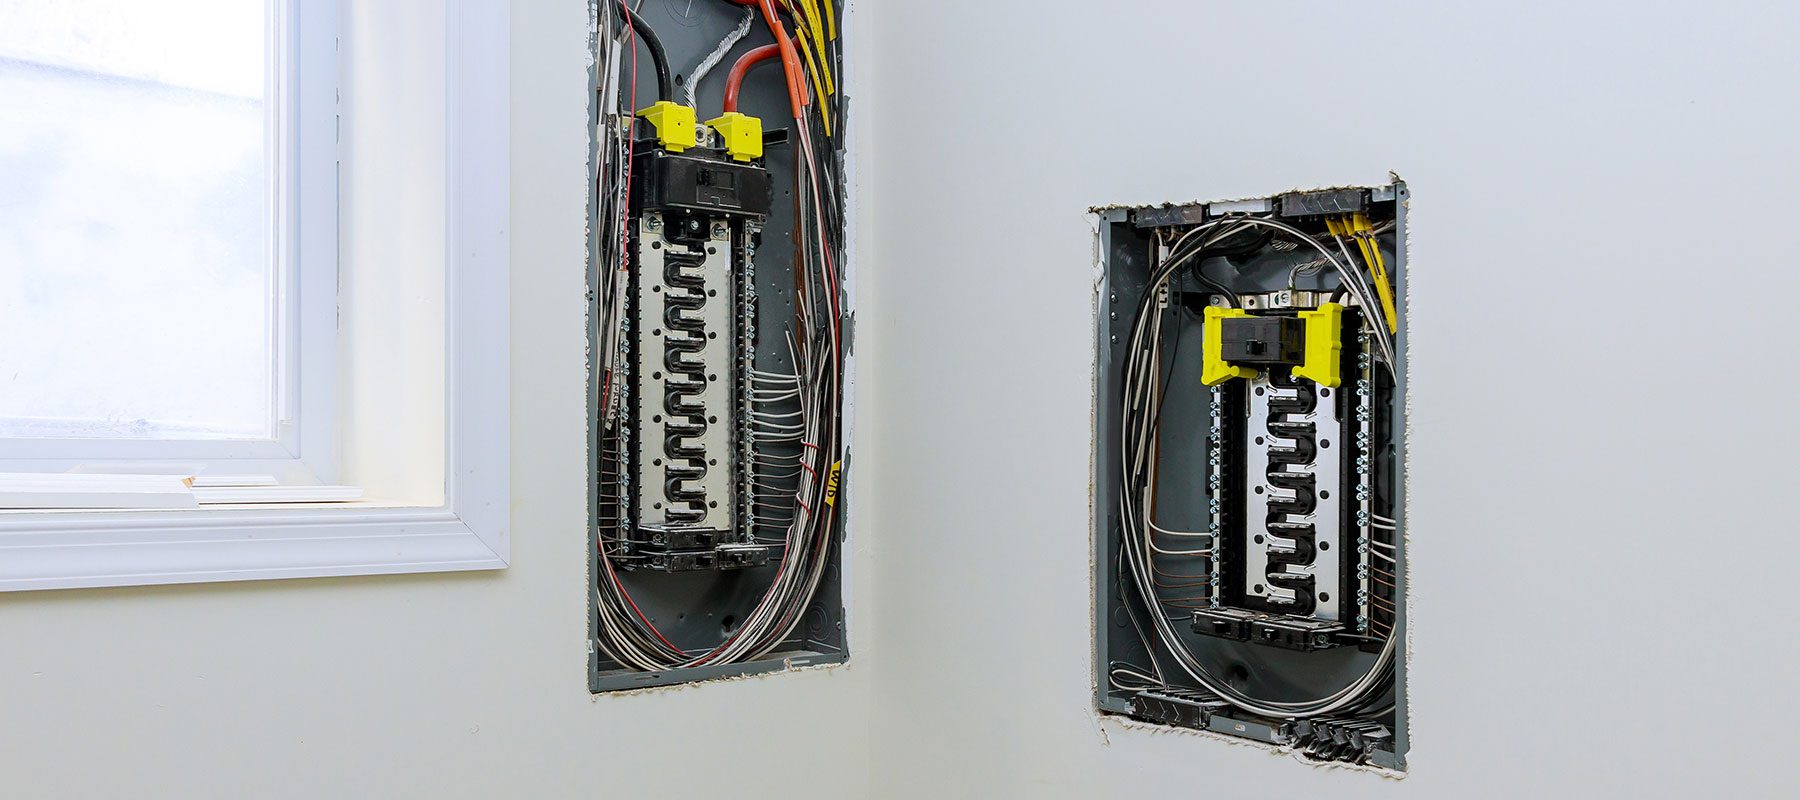 Electrical Fuse Box | US Electrical